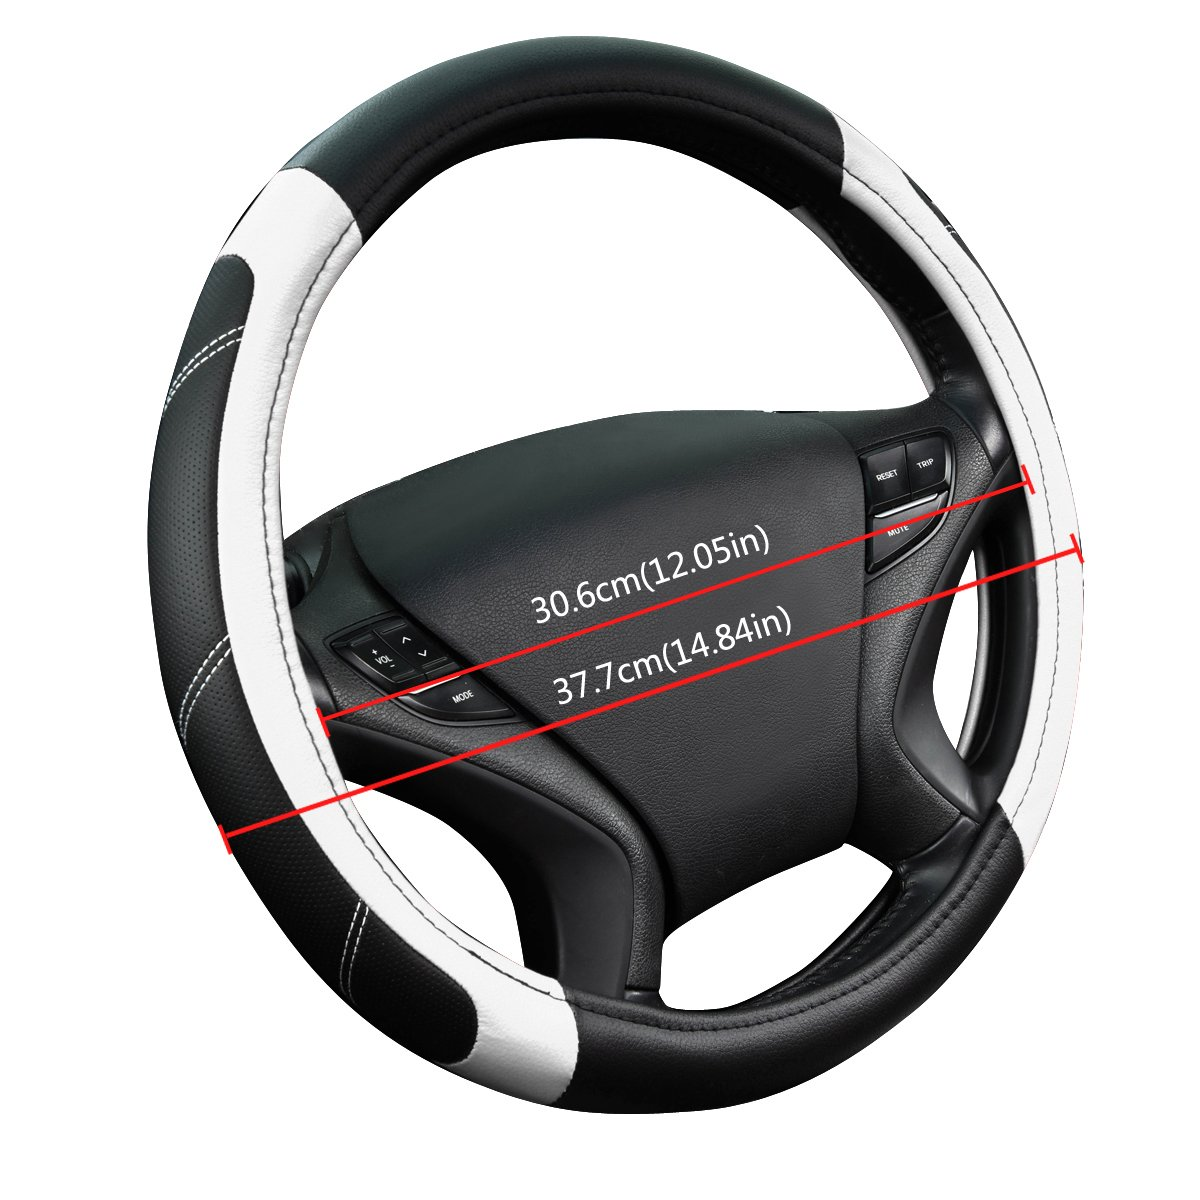 NEW ARRIVAL CAR PASS Line Rider Leather Universal Steering Wheel Cover fits for Truck,Suv,Cars Black with blue color